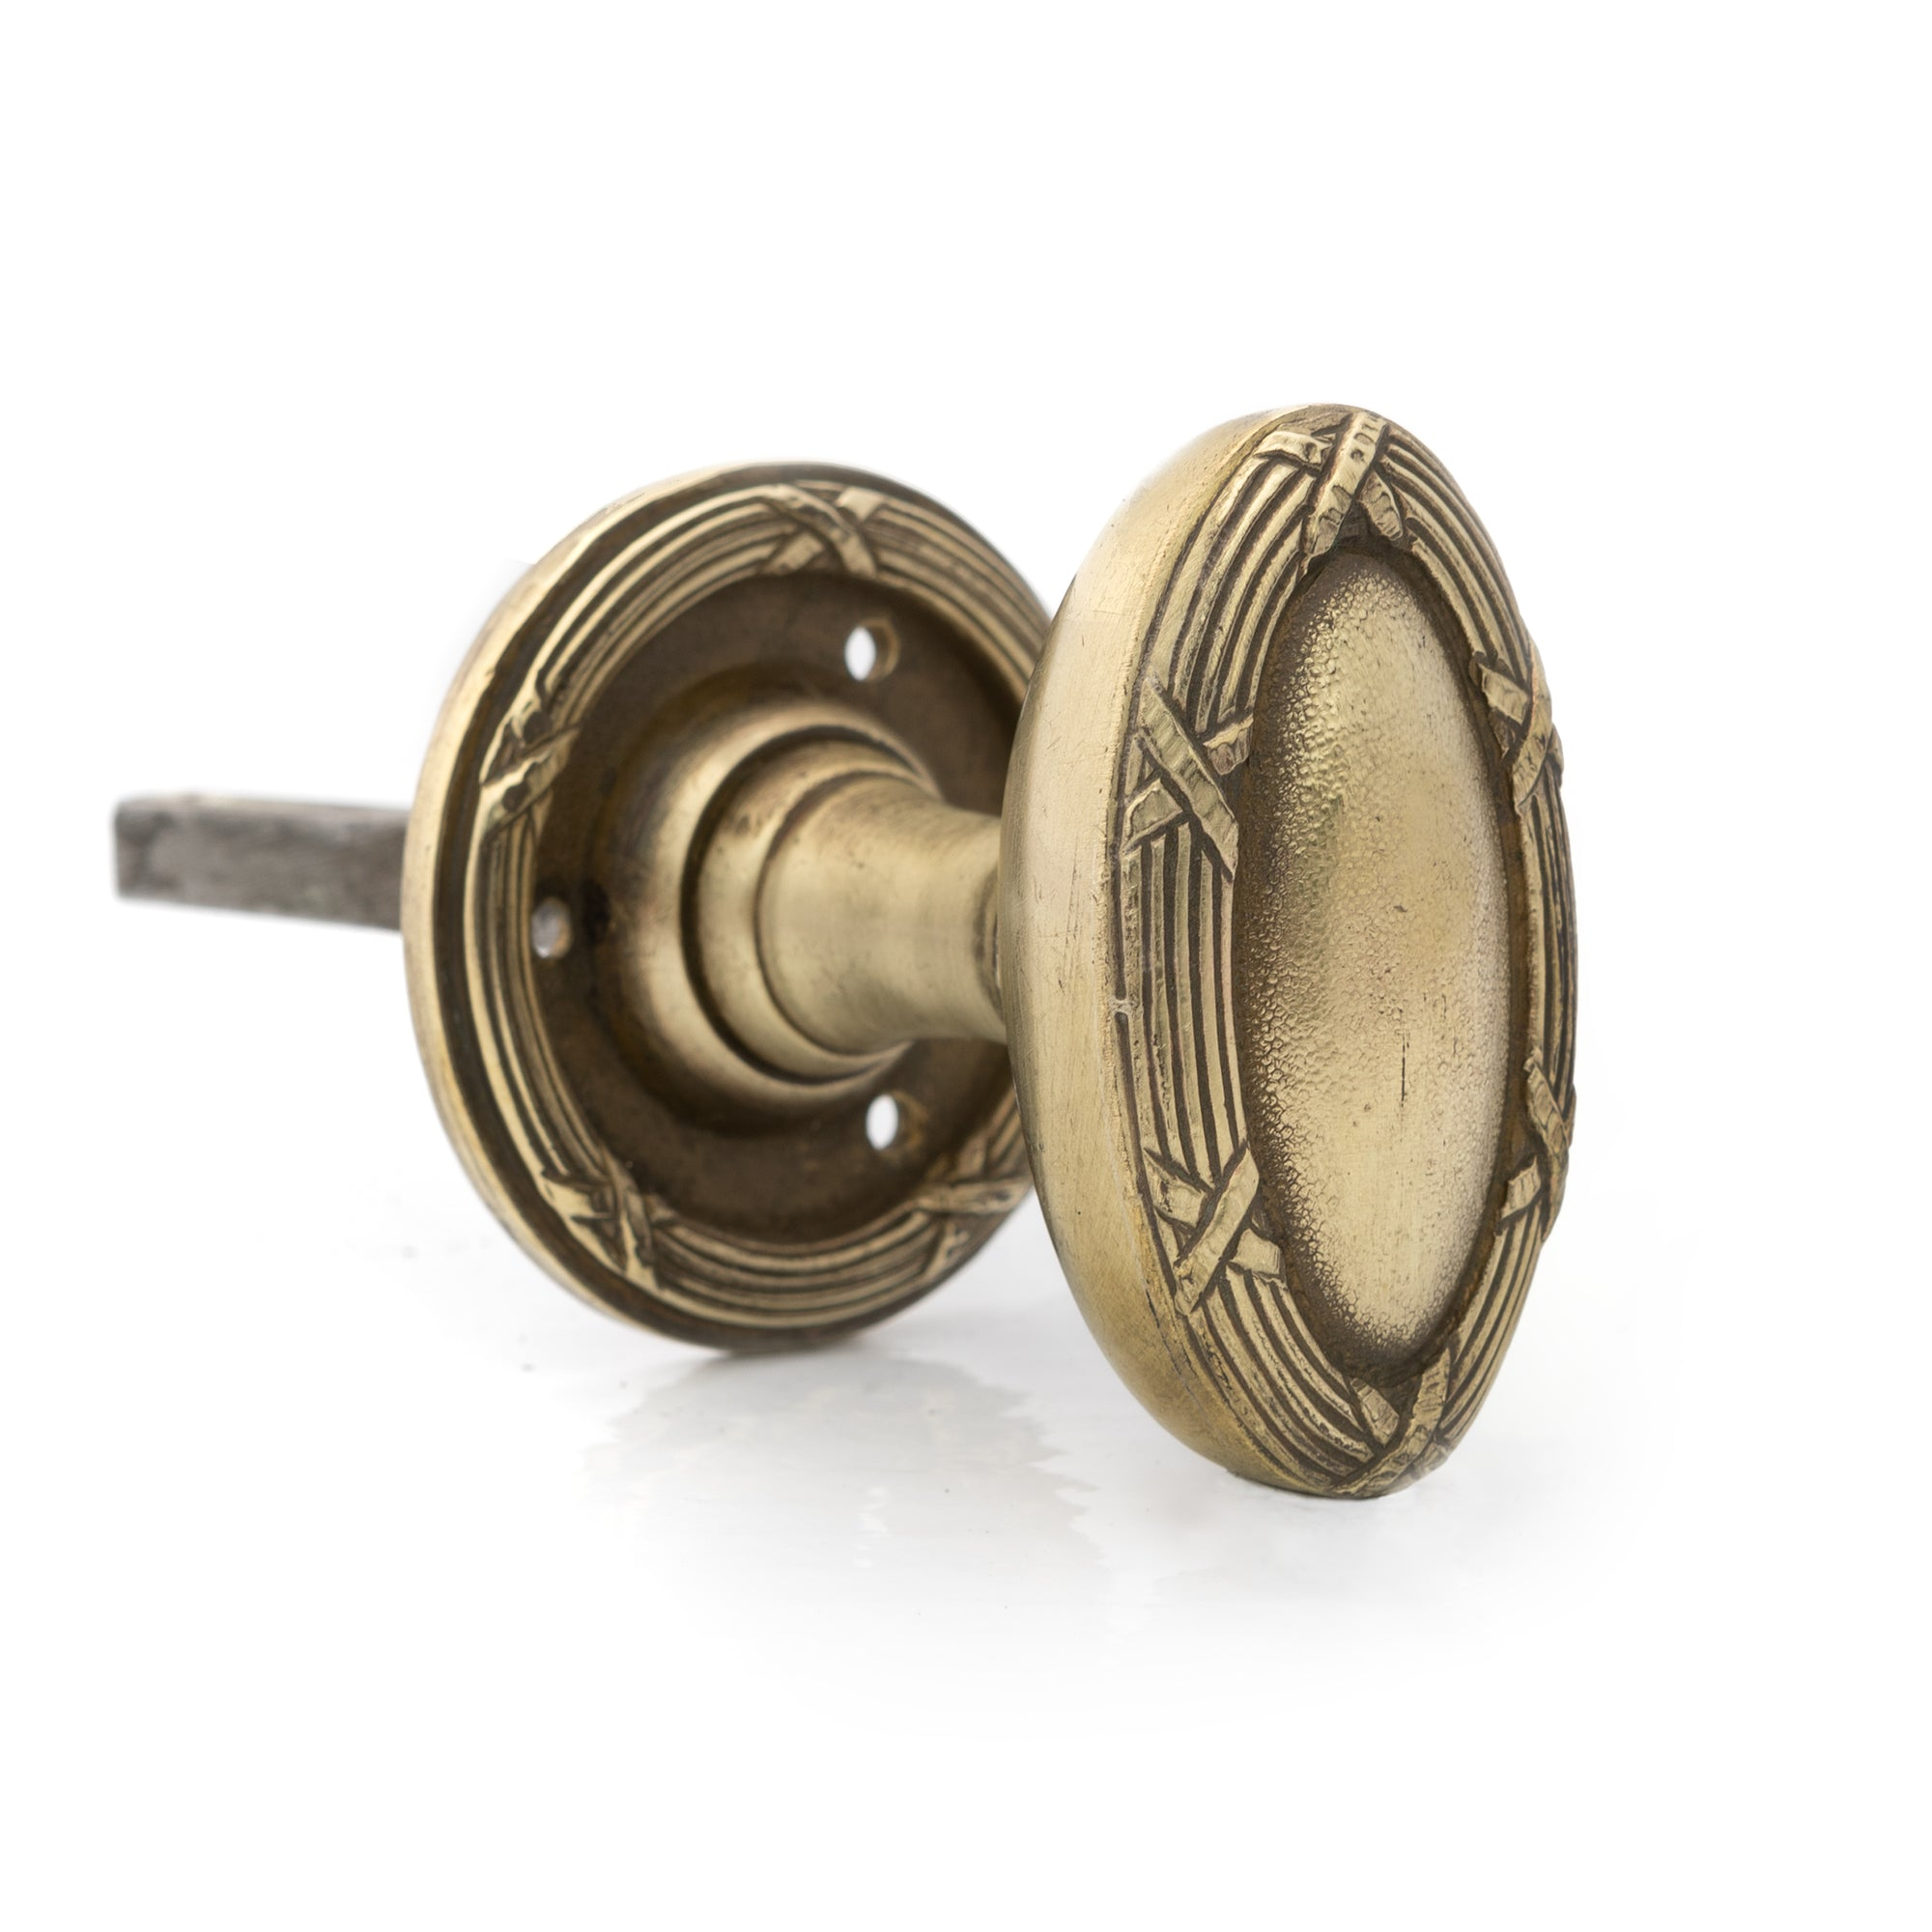 Antique Edwardian Oval Brass Door Knob | The Architectural Forum